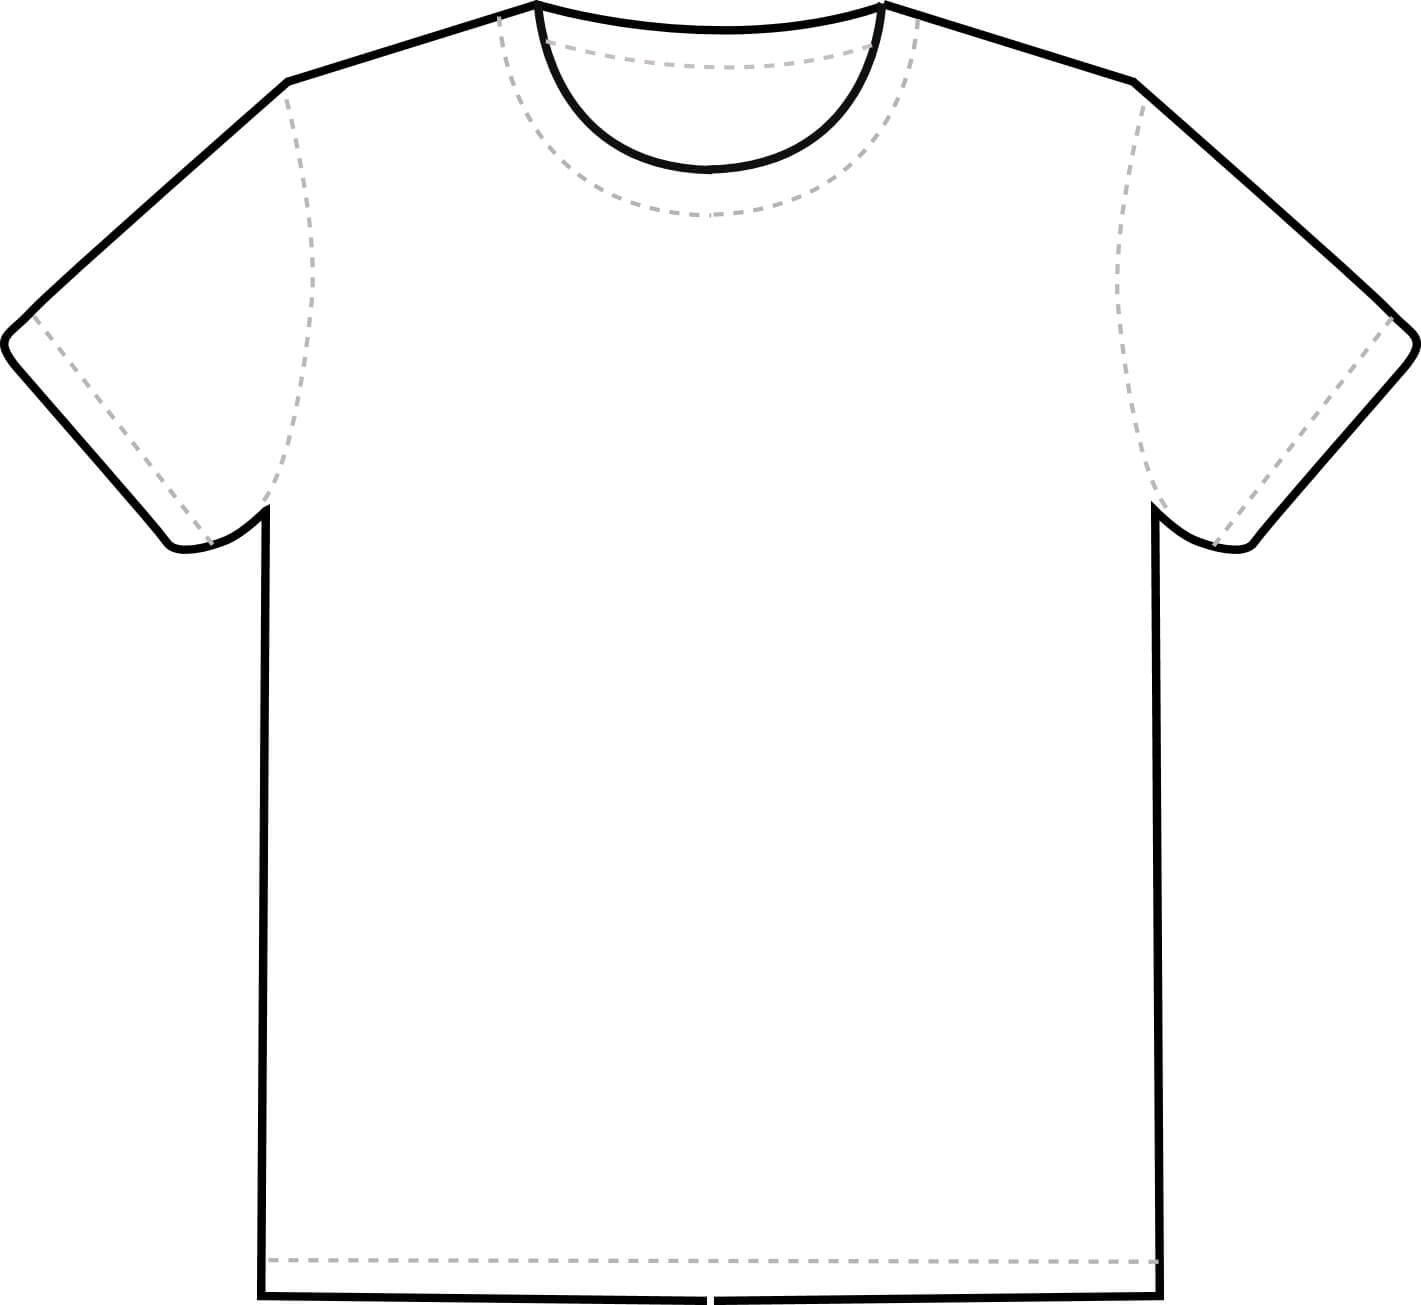 Free T Shirt Outline Template, Download Free Clip Art, Free Pertaining To Blank T Shirt Outline Template